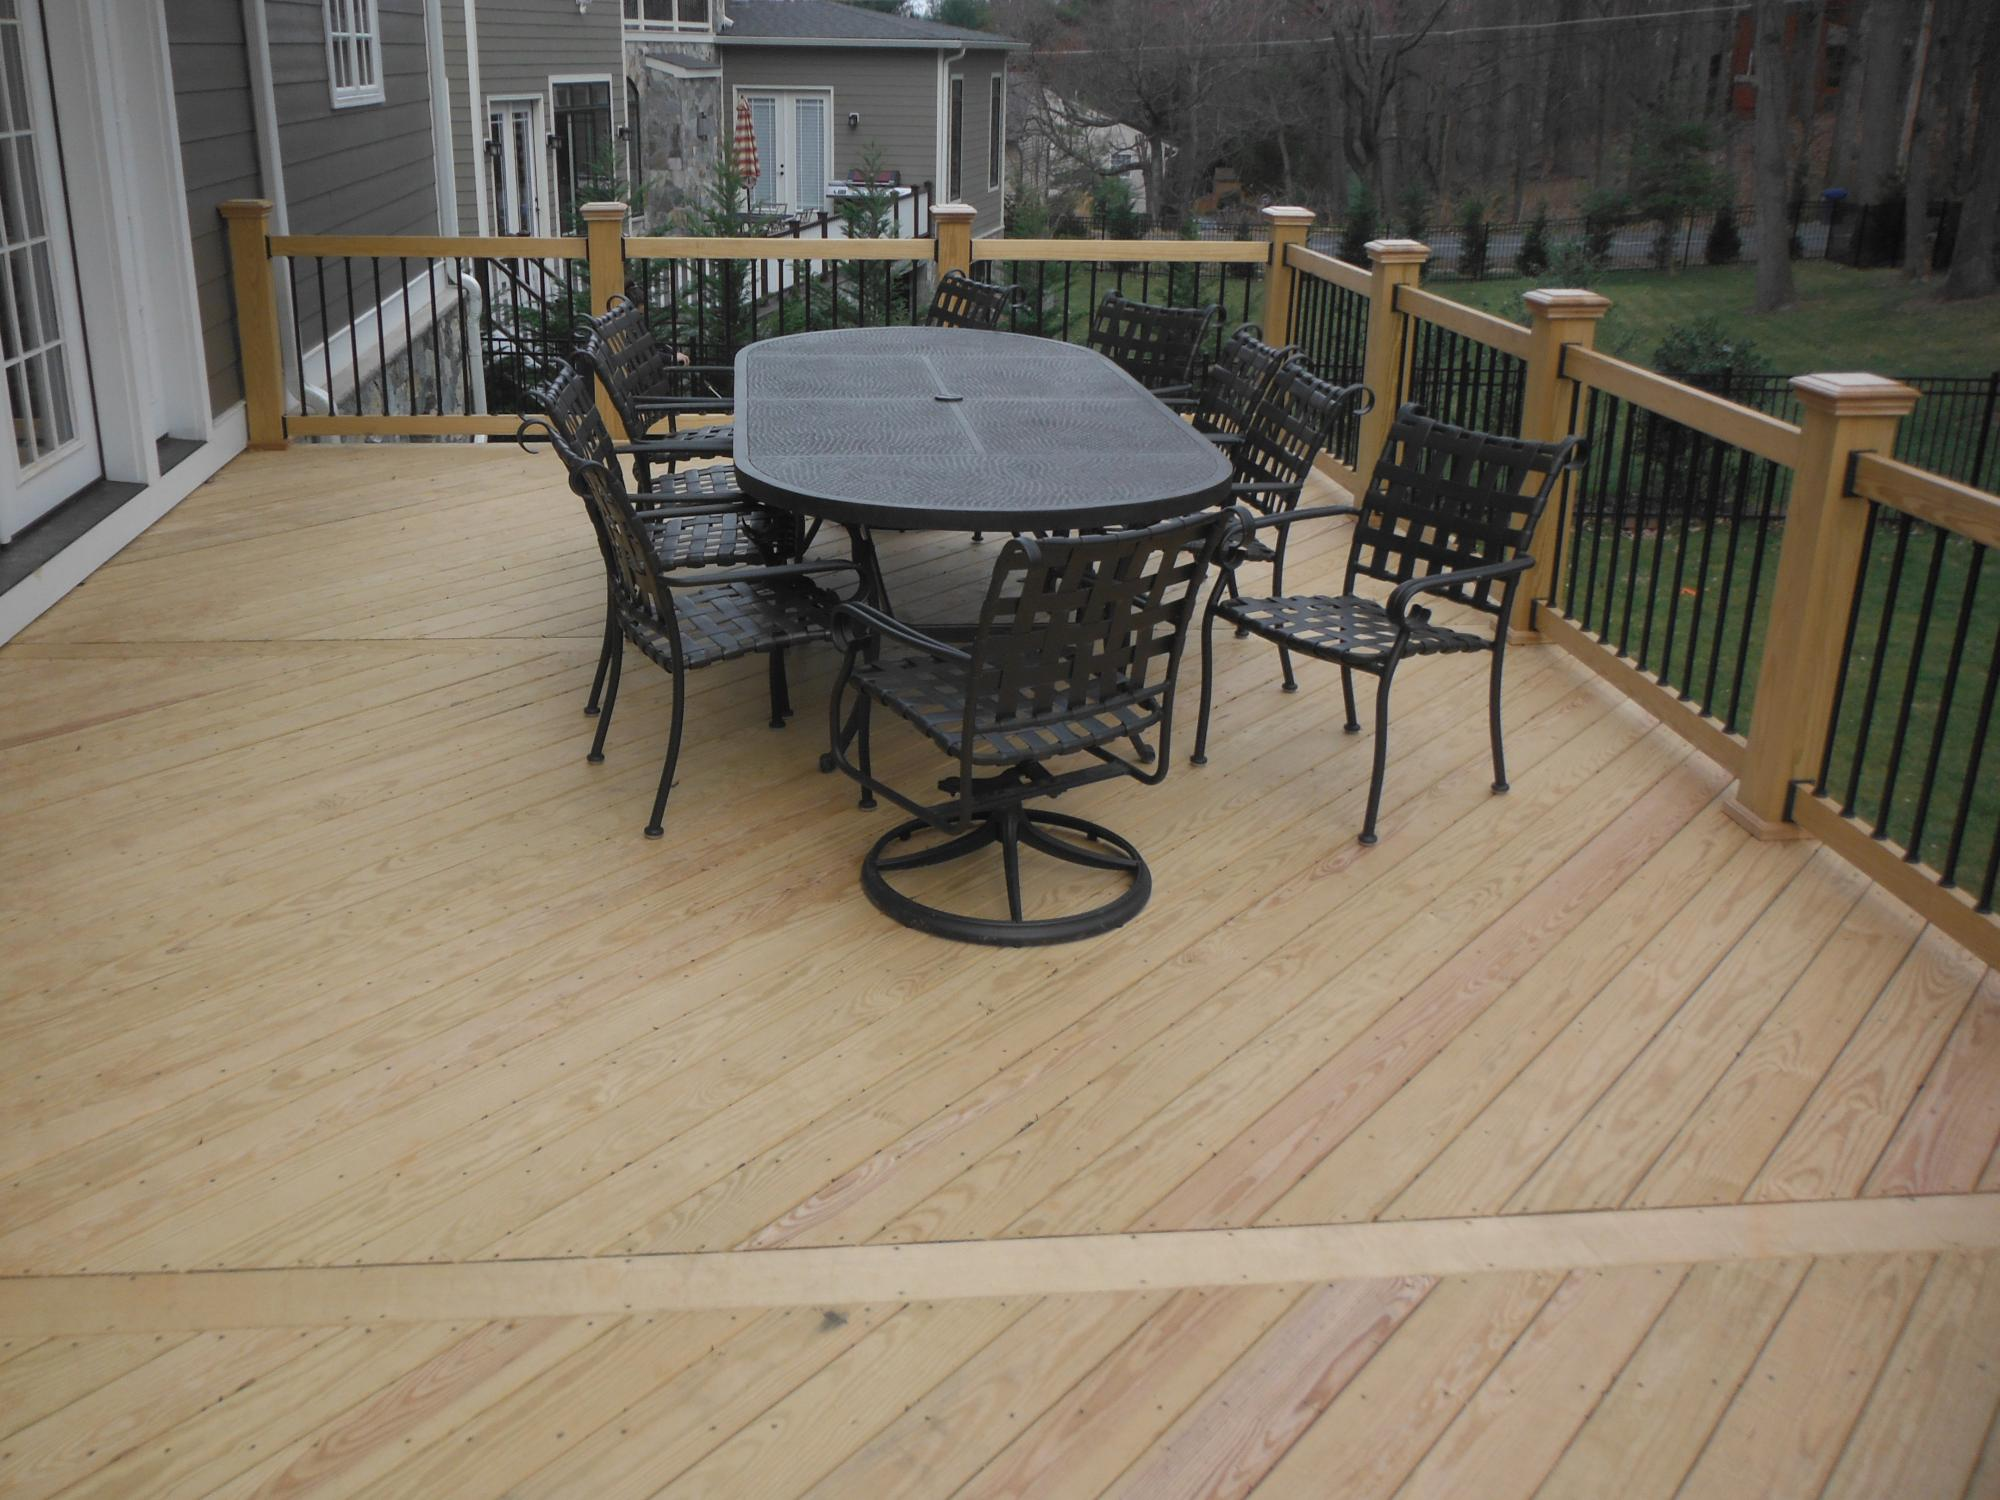 Deck is white pine